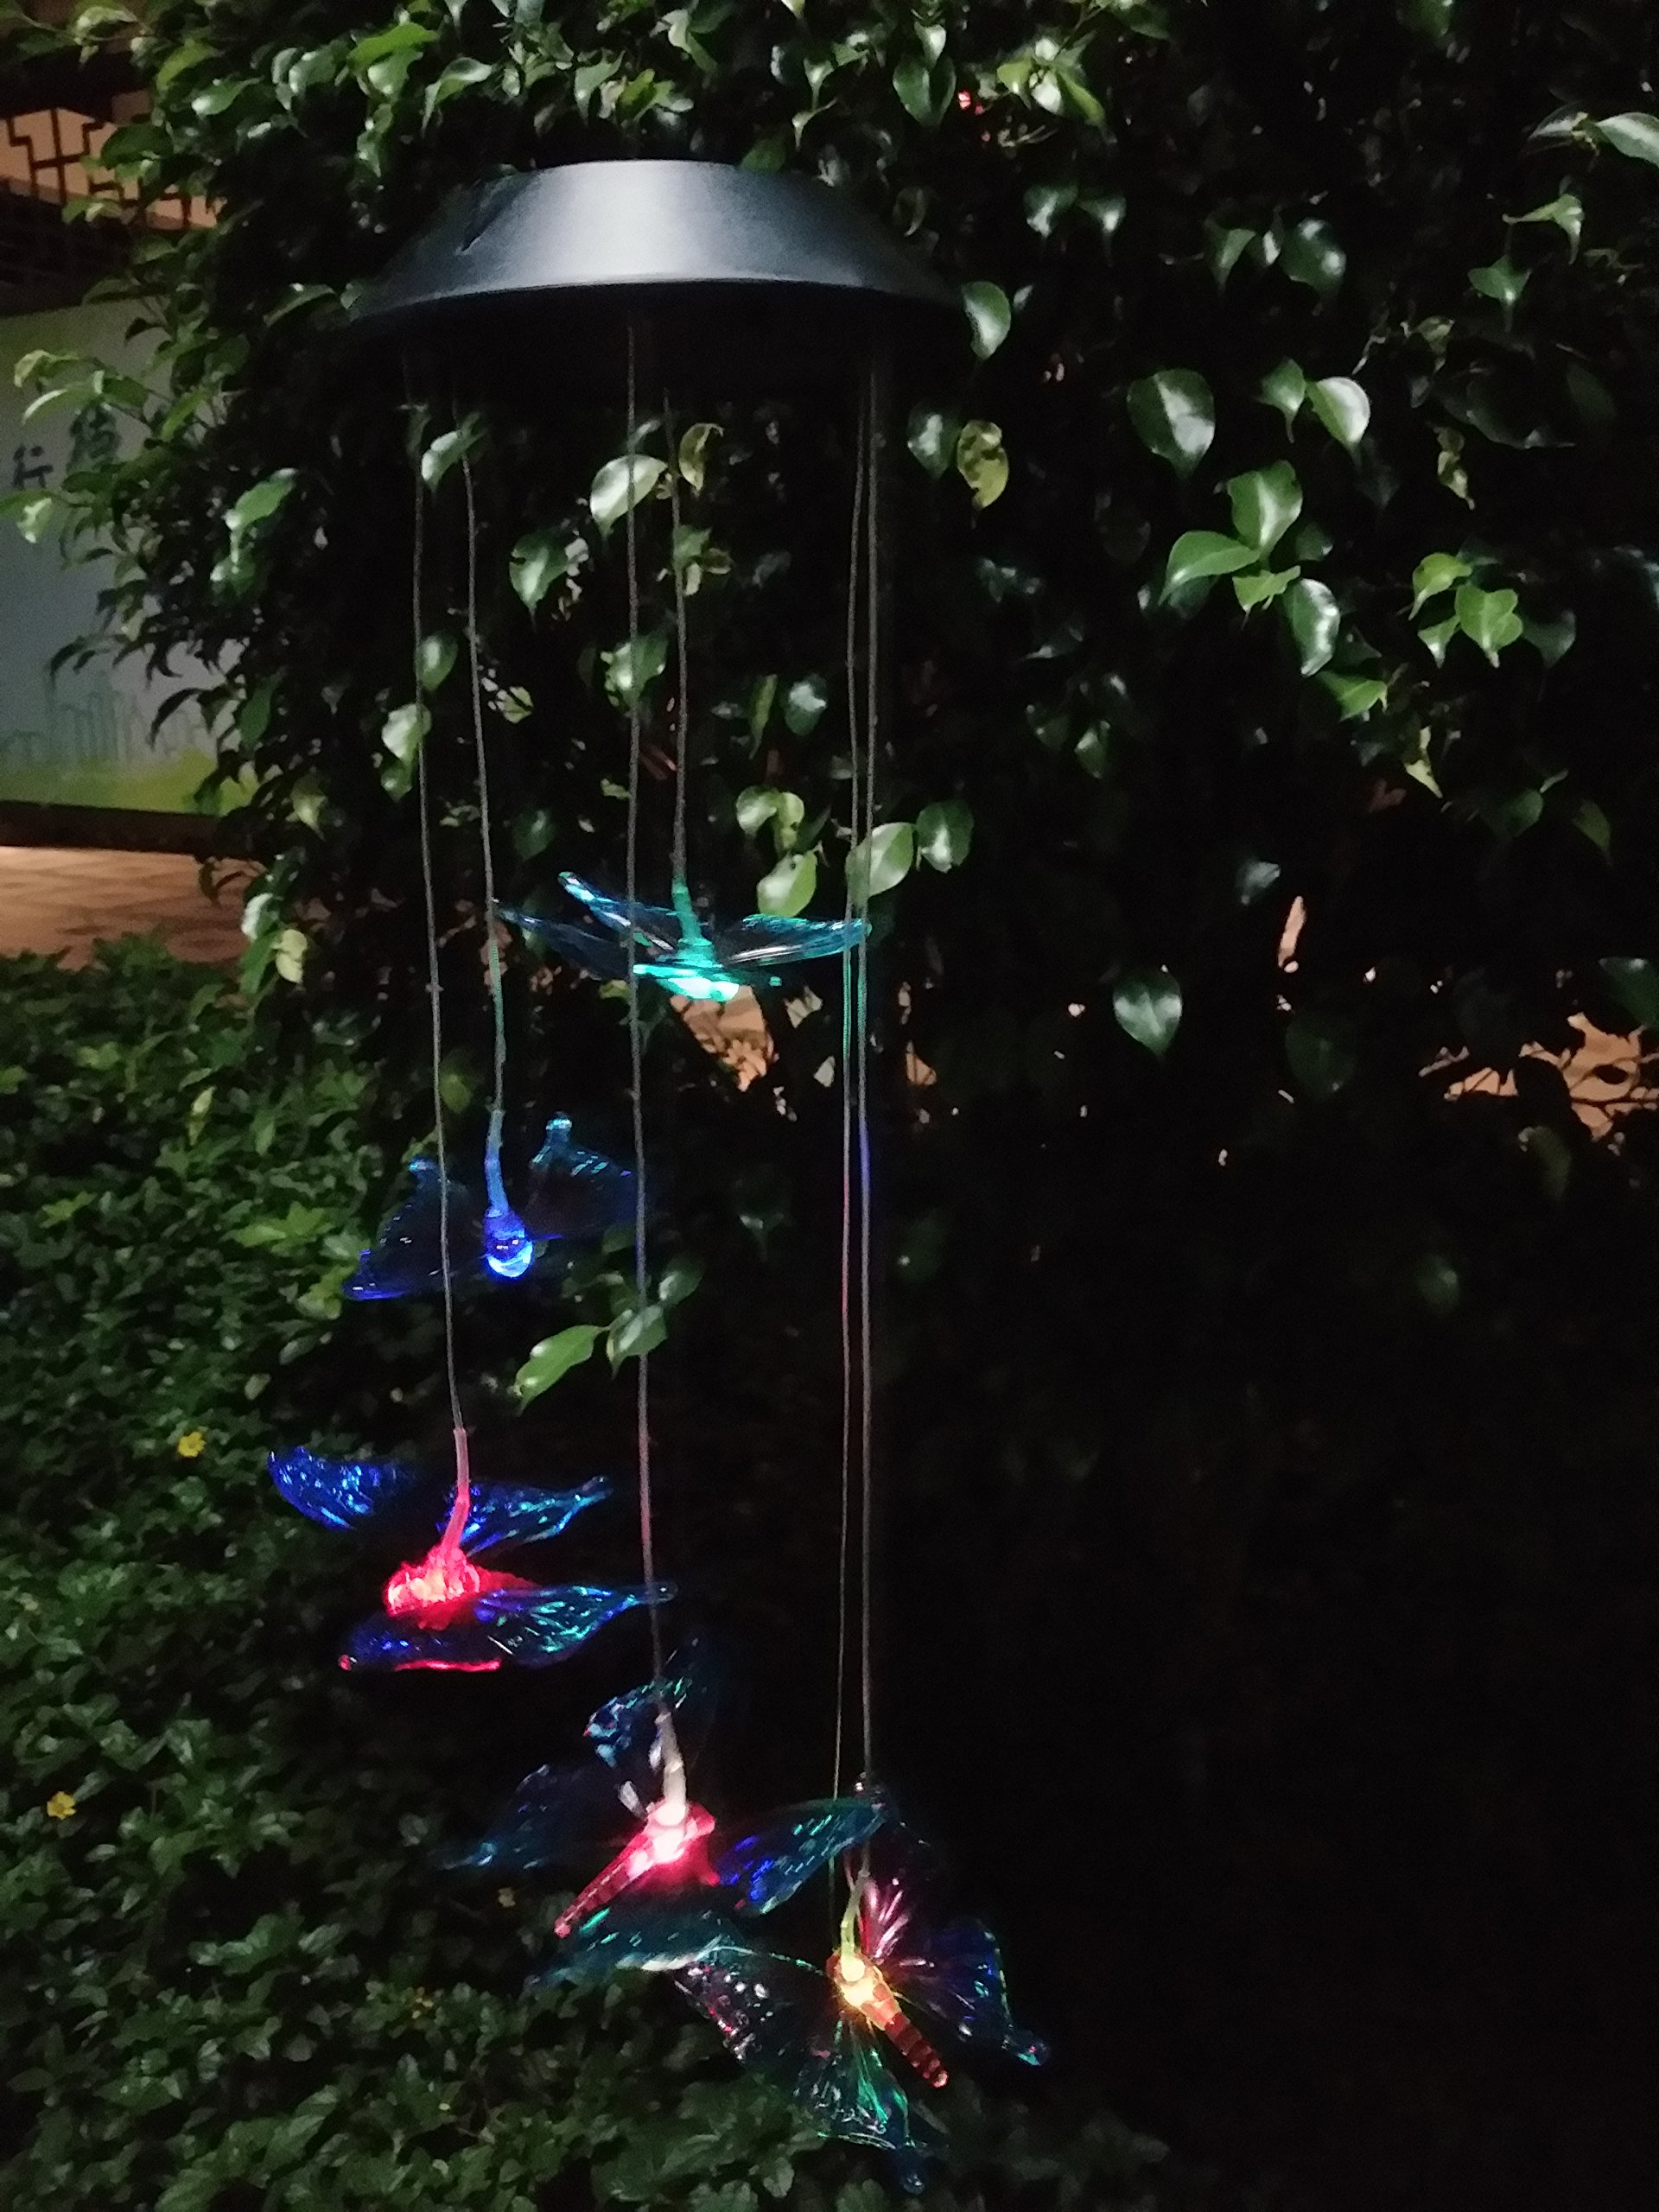 WiVison Solar Wind Chimes Light Control Suniness Hanging Lamp Wind Chime Waterproof Color-Changing Led Windbell Lamps Romantic for Outdoor Indoor Gardening Lighting Decoration Blue Color Butterfly